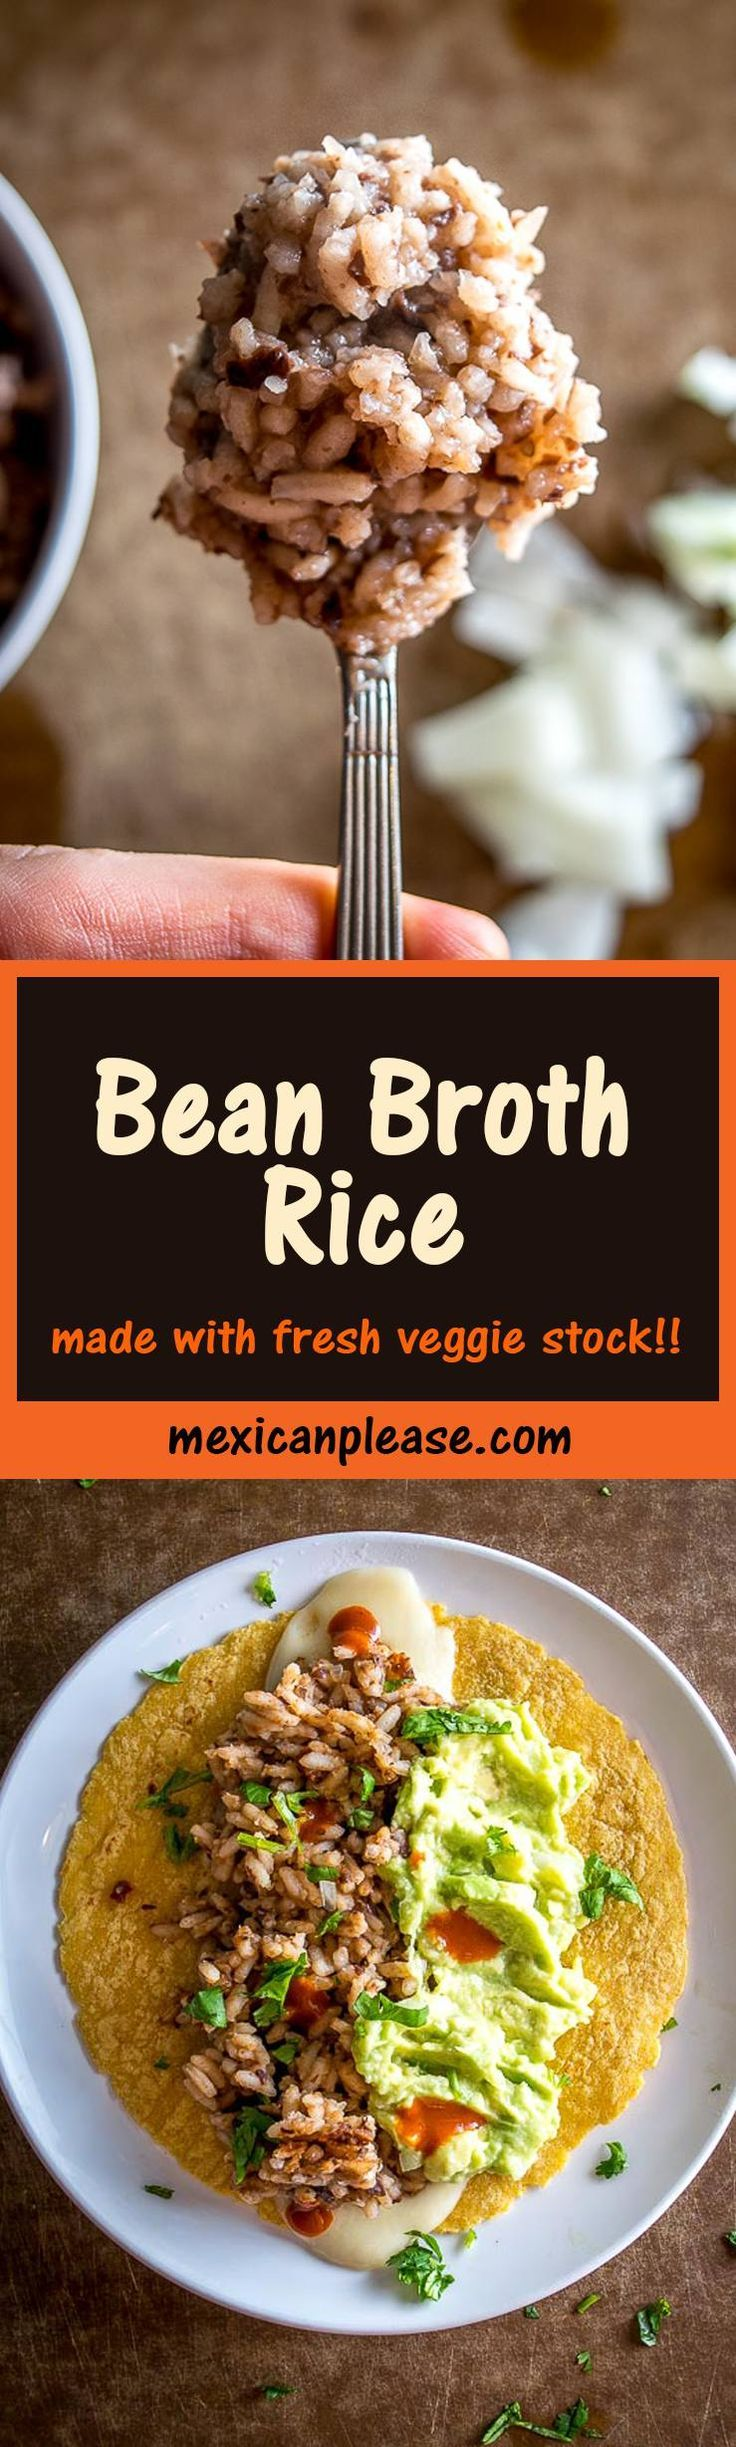 Puree beans into some stock and you've got the simmering liquid for a delicious batch of Bean Broth Rice.  I've been making cheesy guacamole tacos with it all week long!  mexicanplease.com